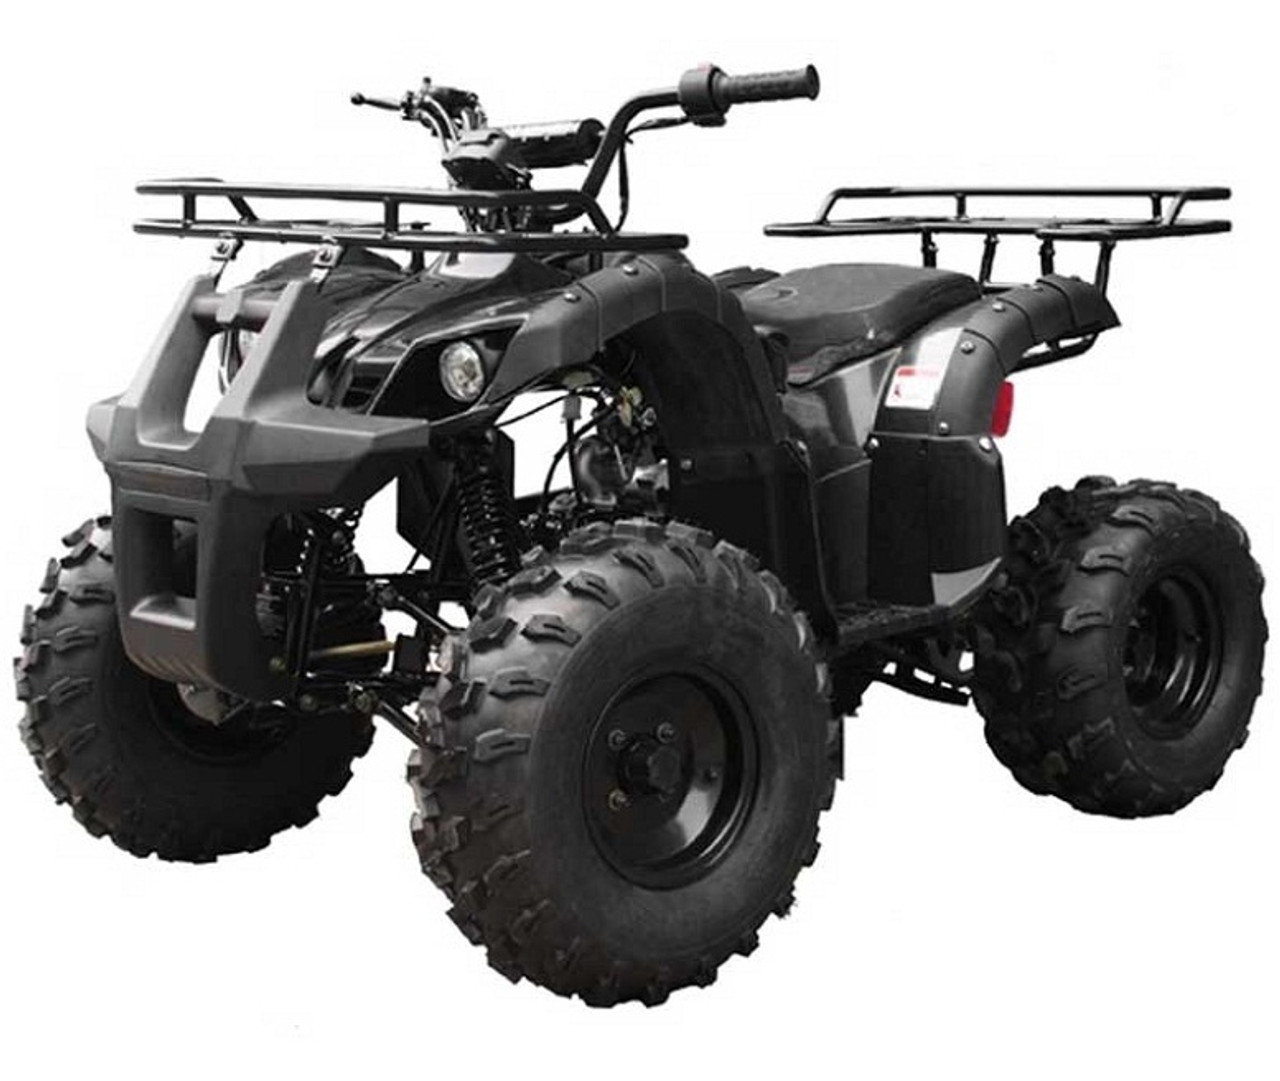 Taotao TFORCE Mid Size ATV 135D, 107CC Air Cooled, 4-Stroke, 1-Cylinder, Automatic with Reverse ATV